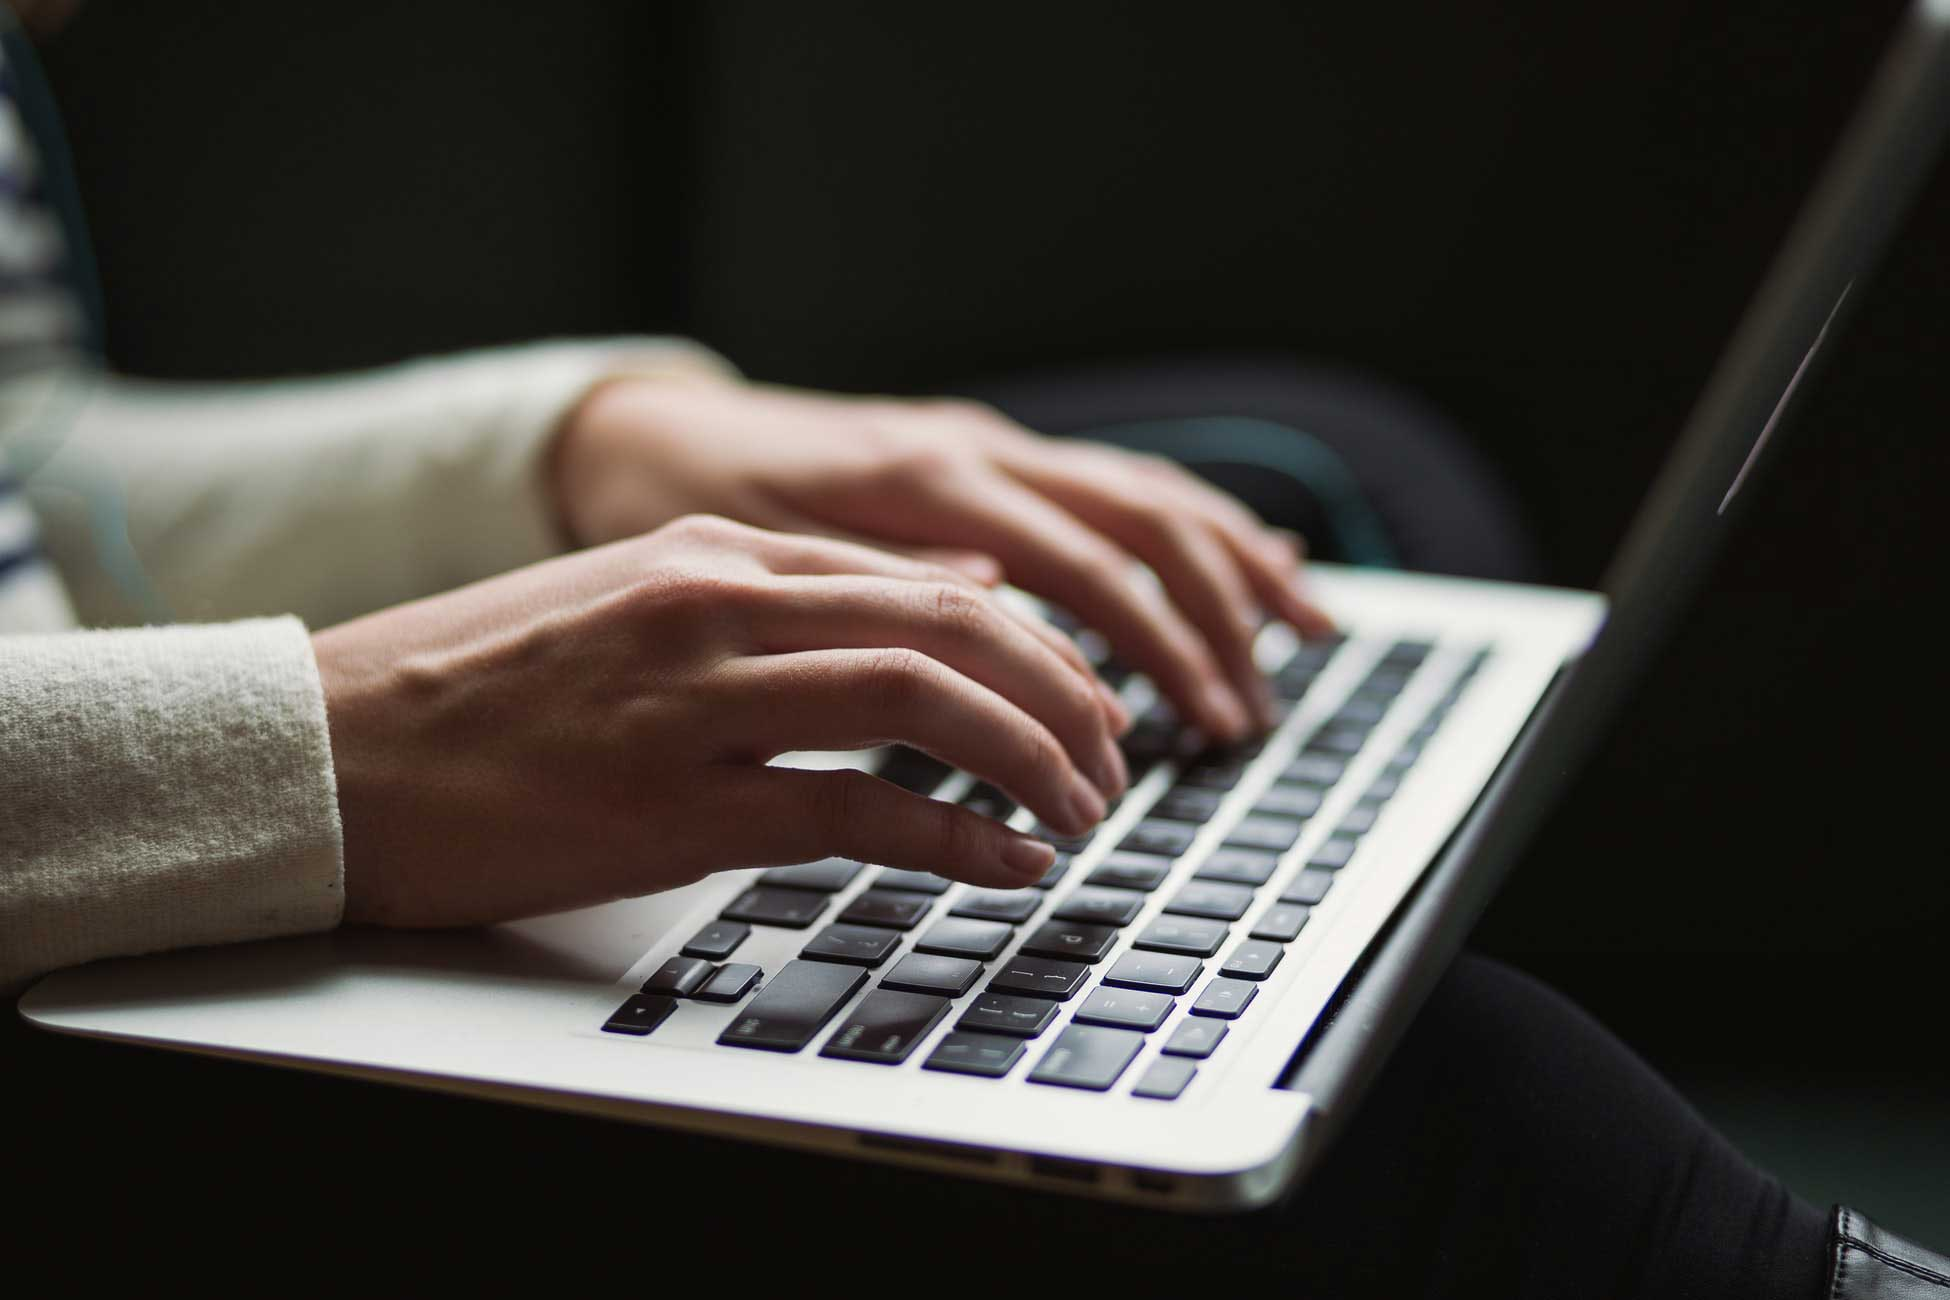 Photo of a woman's hands typing on a laptop.